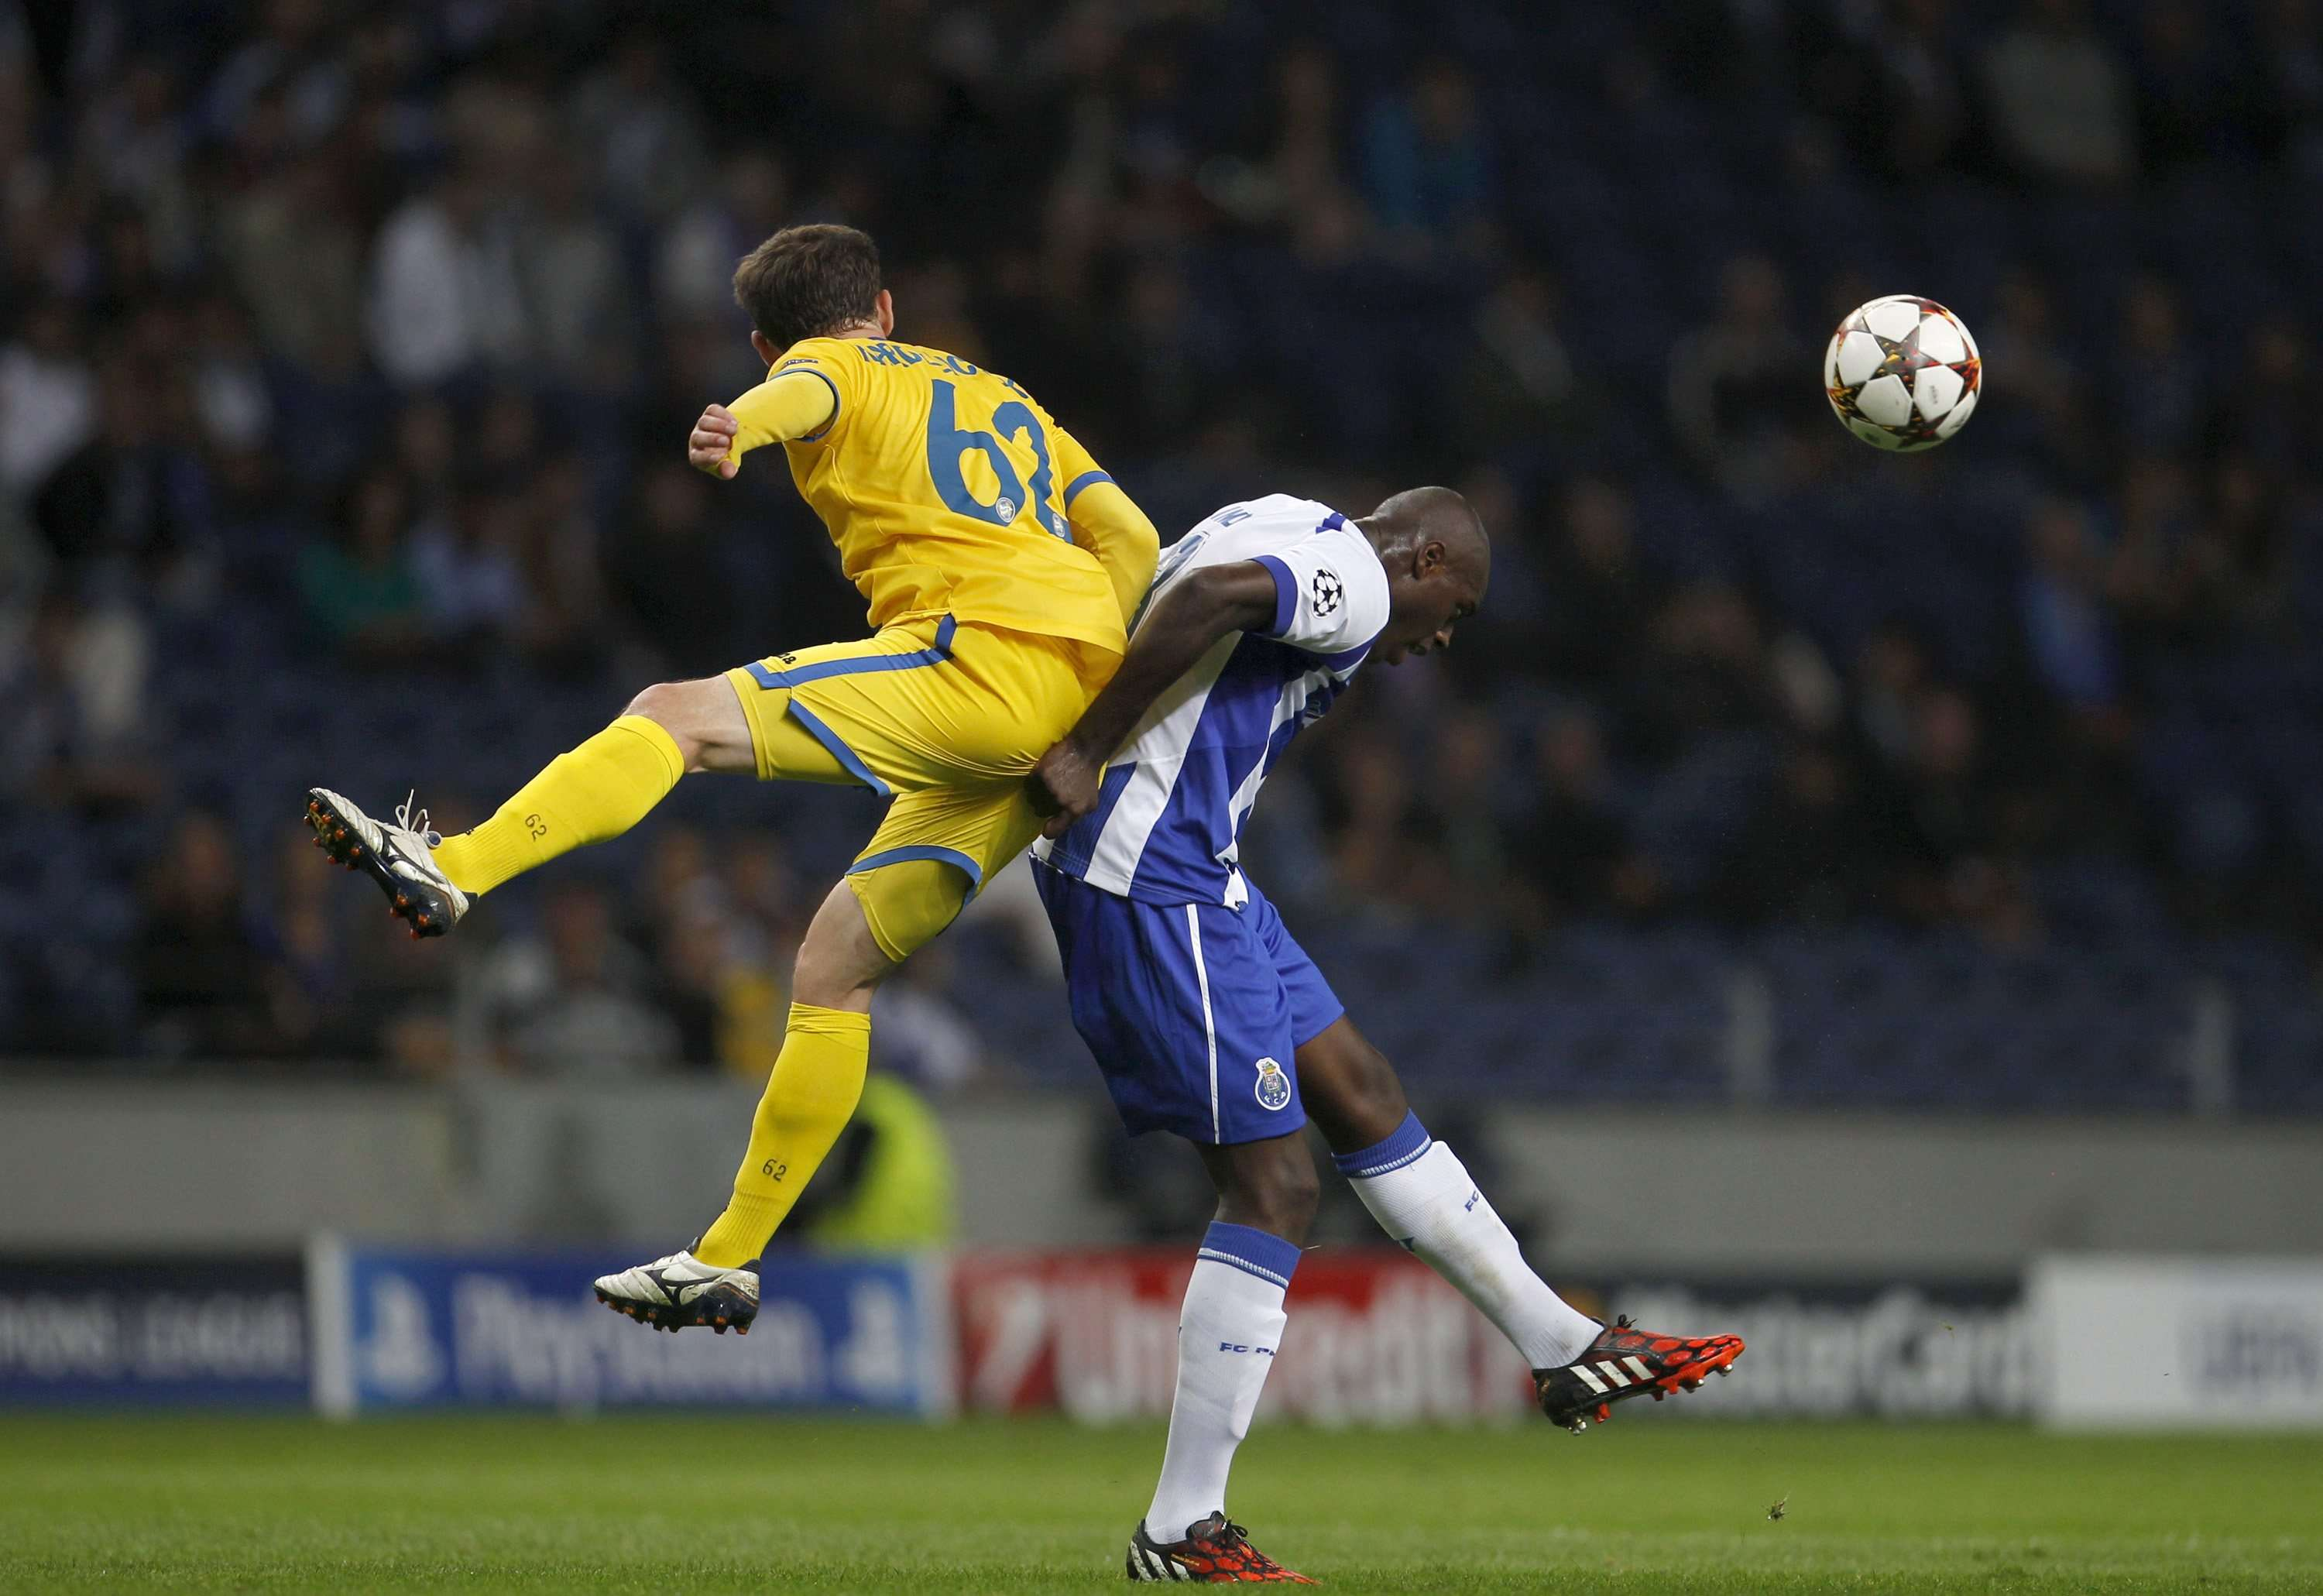 Porto's Bruno Martins (R) fights for the ball with BATE Borisov's Mikhail Gordeychuk during their Champions League Group H soccer match at Dragao stadium in Porto September 17, 2014. REUTERS/Rafael Marchante (PORTUGAL - Tags: SPORT SOCCER) Foto: RAFAEL MARCHANTE/REUTERS